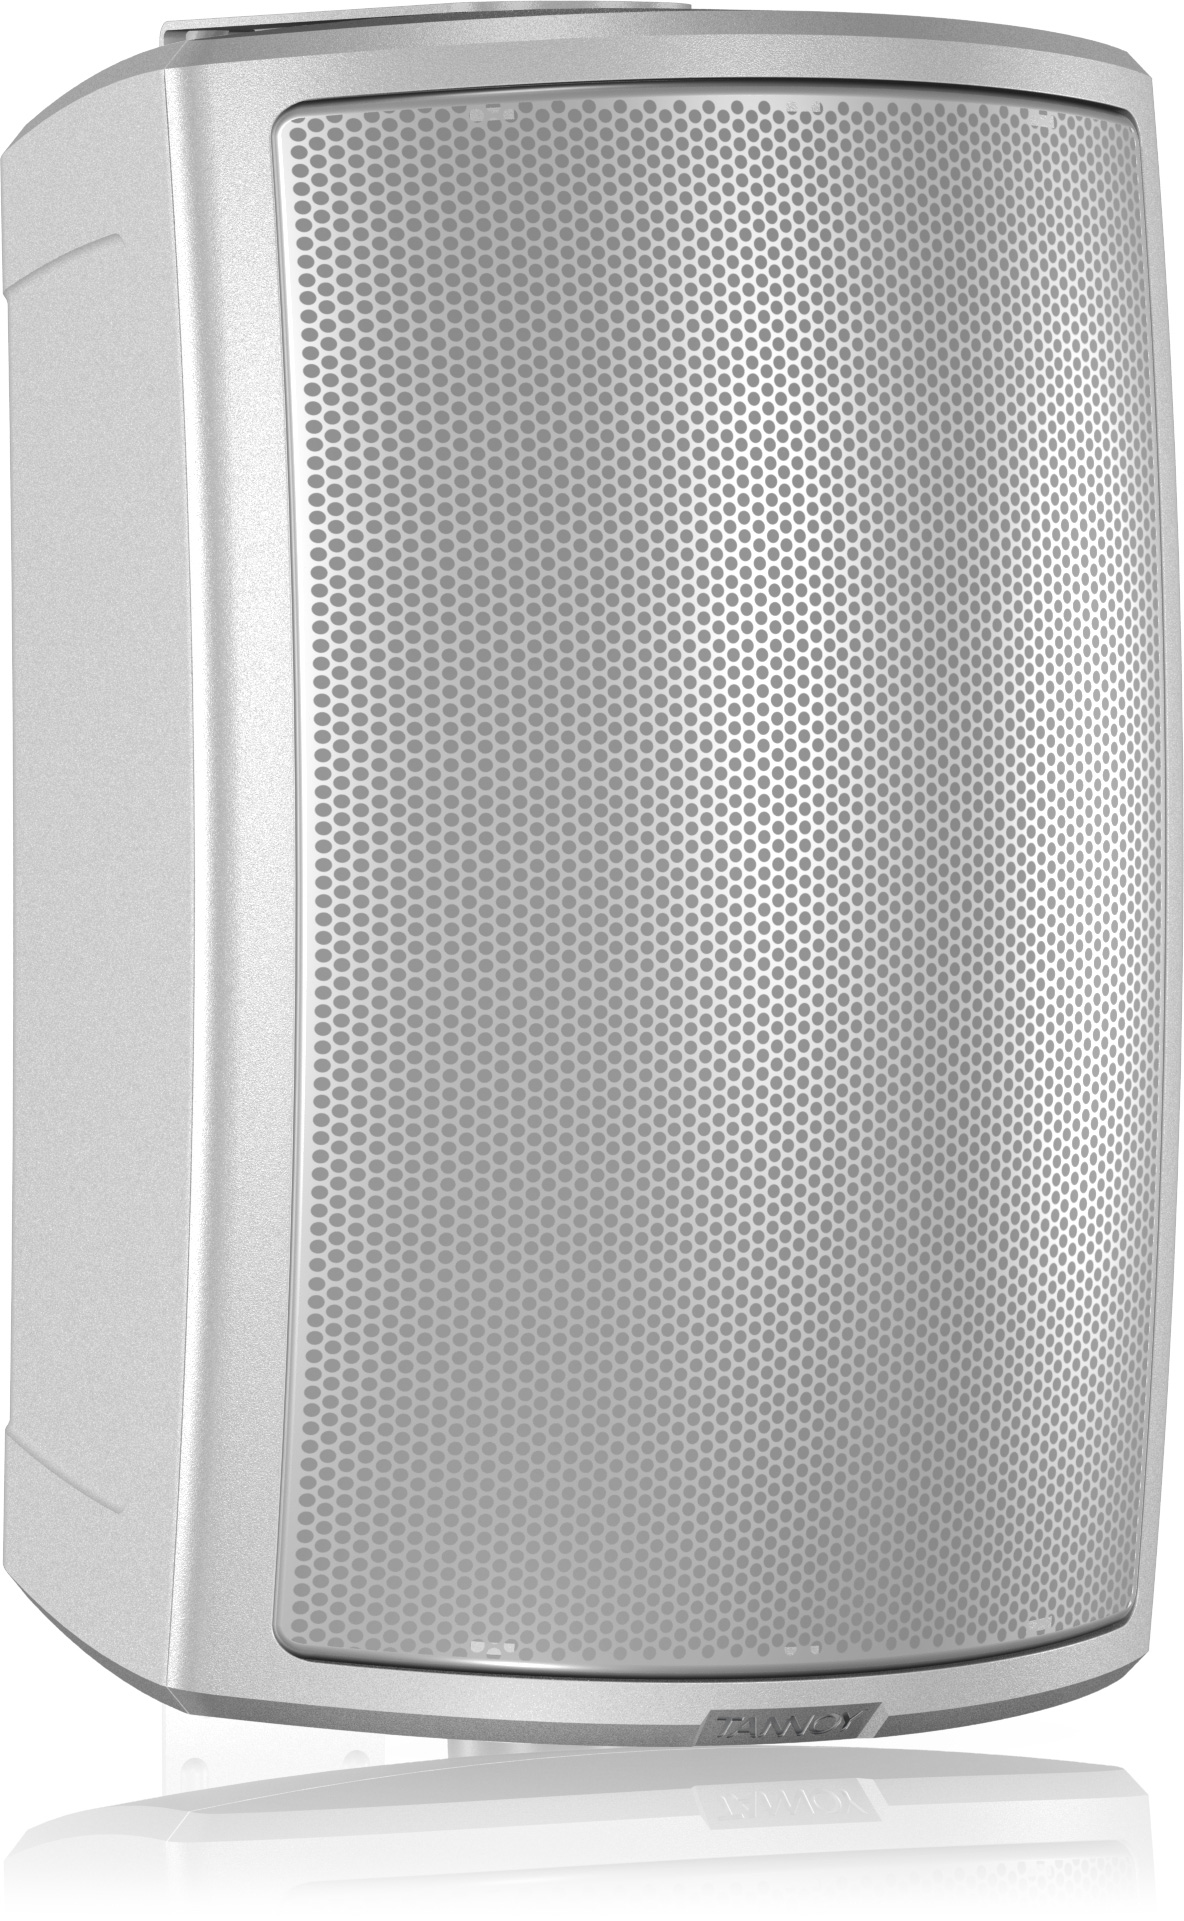 Tannoy Ams 6ict Surface Mount Loudspeaker White Pair